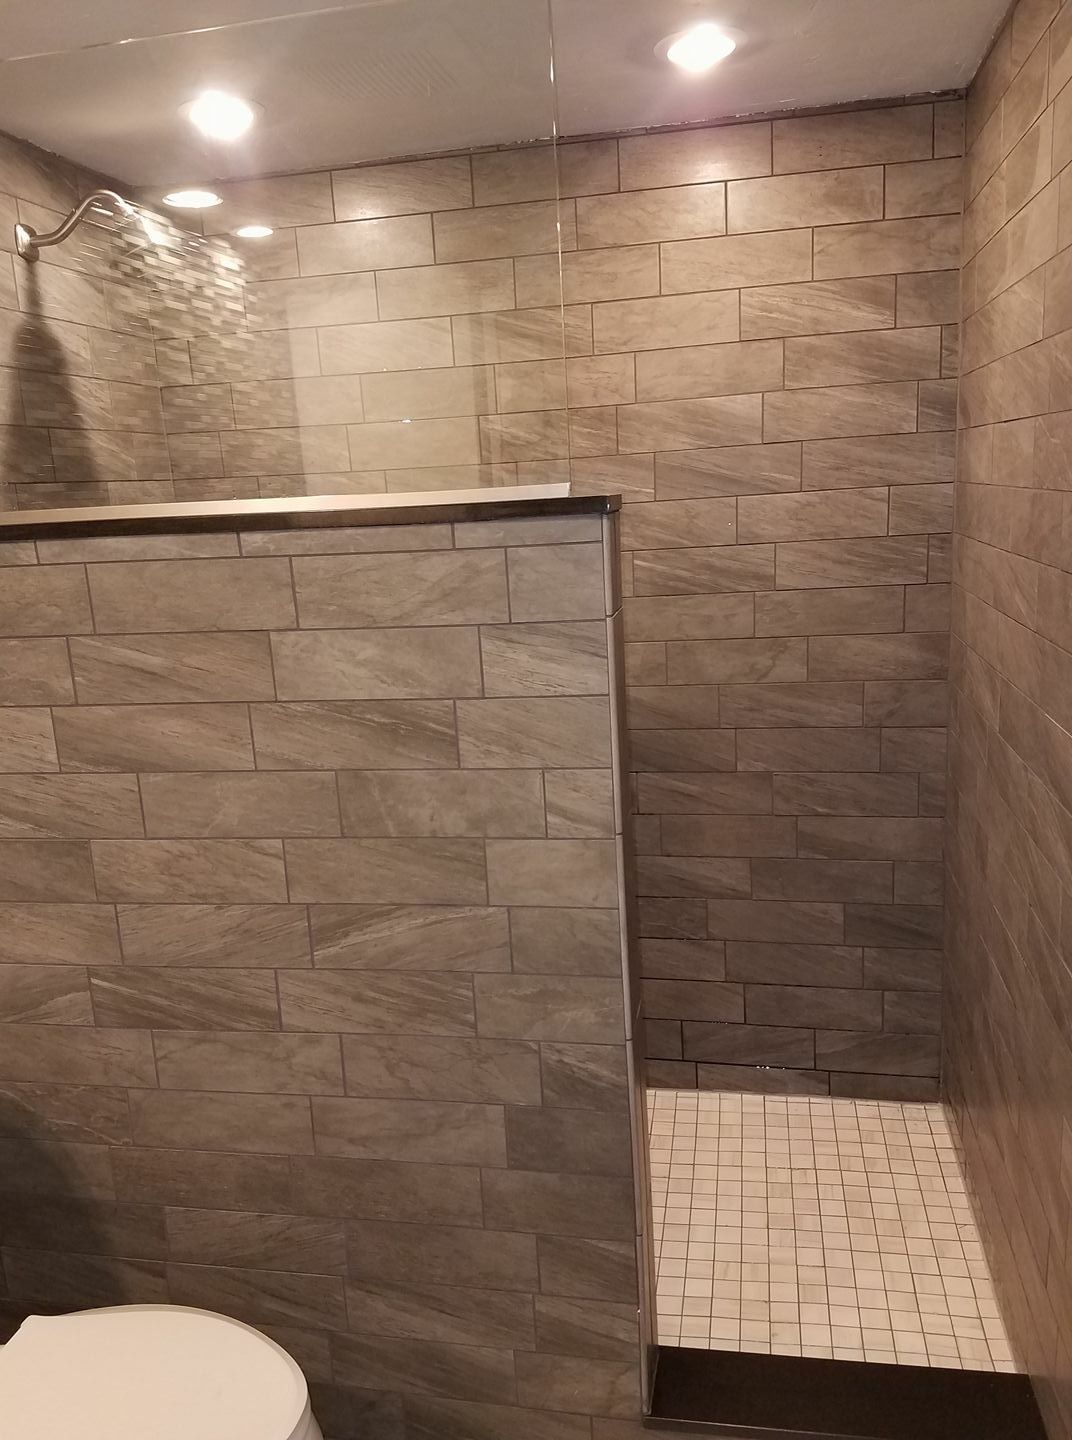 Tiled Bathroom Remodel Large Walk In Shower Half Wall Half